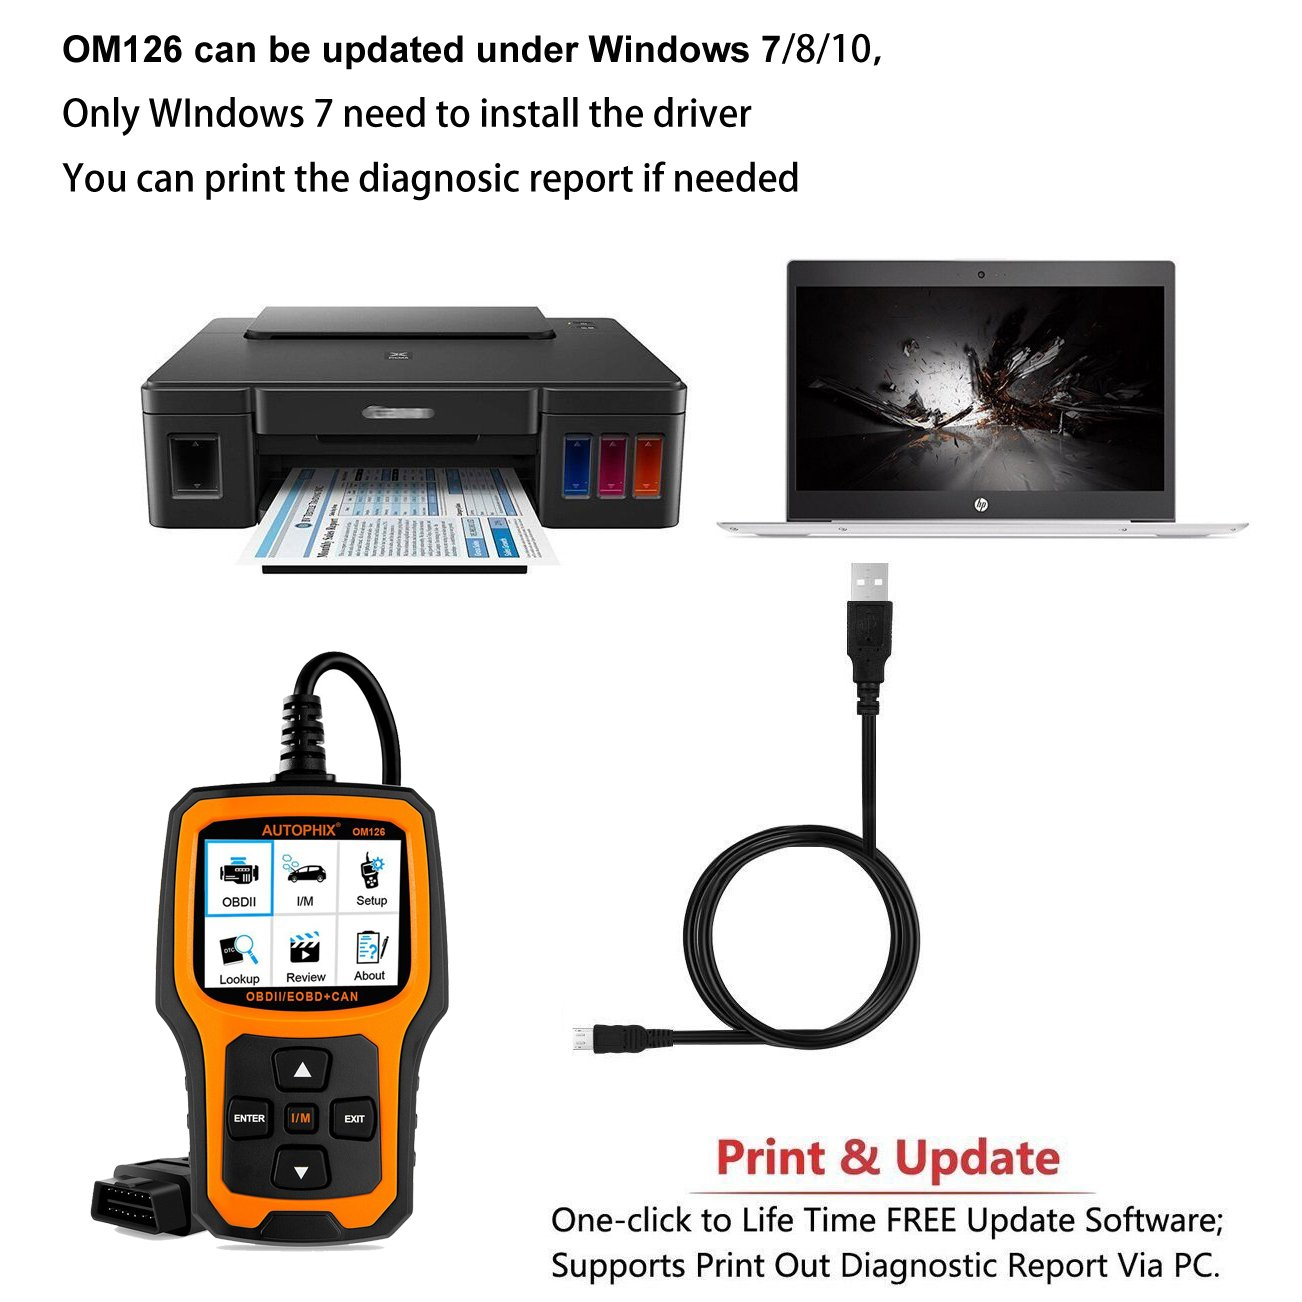 AUTOPHIX OM126 ensures free software upgrades for a lifetime.